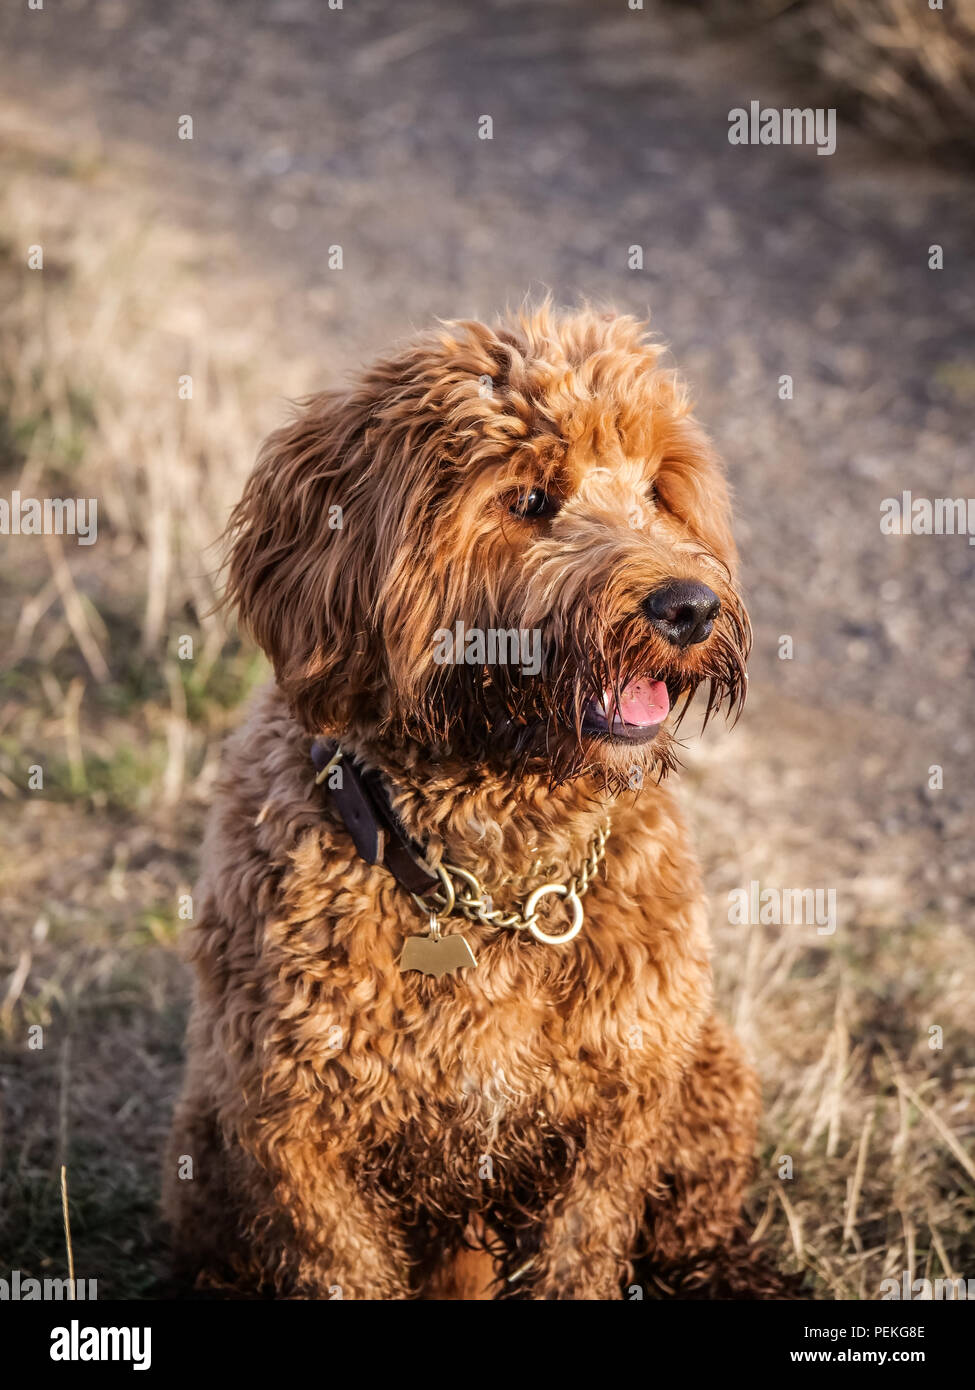 Red haired Cockapoo dog at play in the countryside - Stock Image